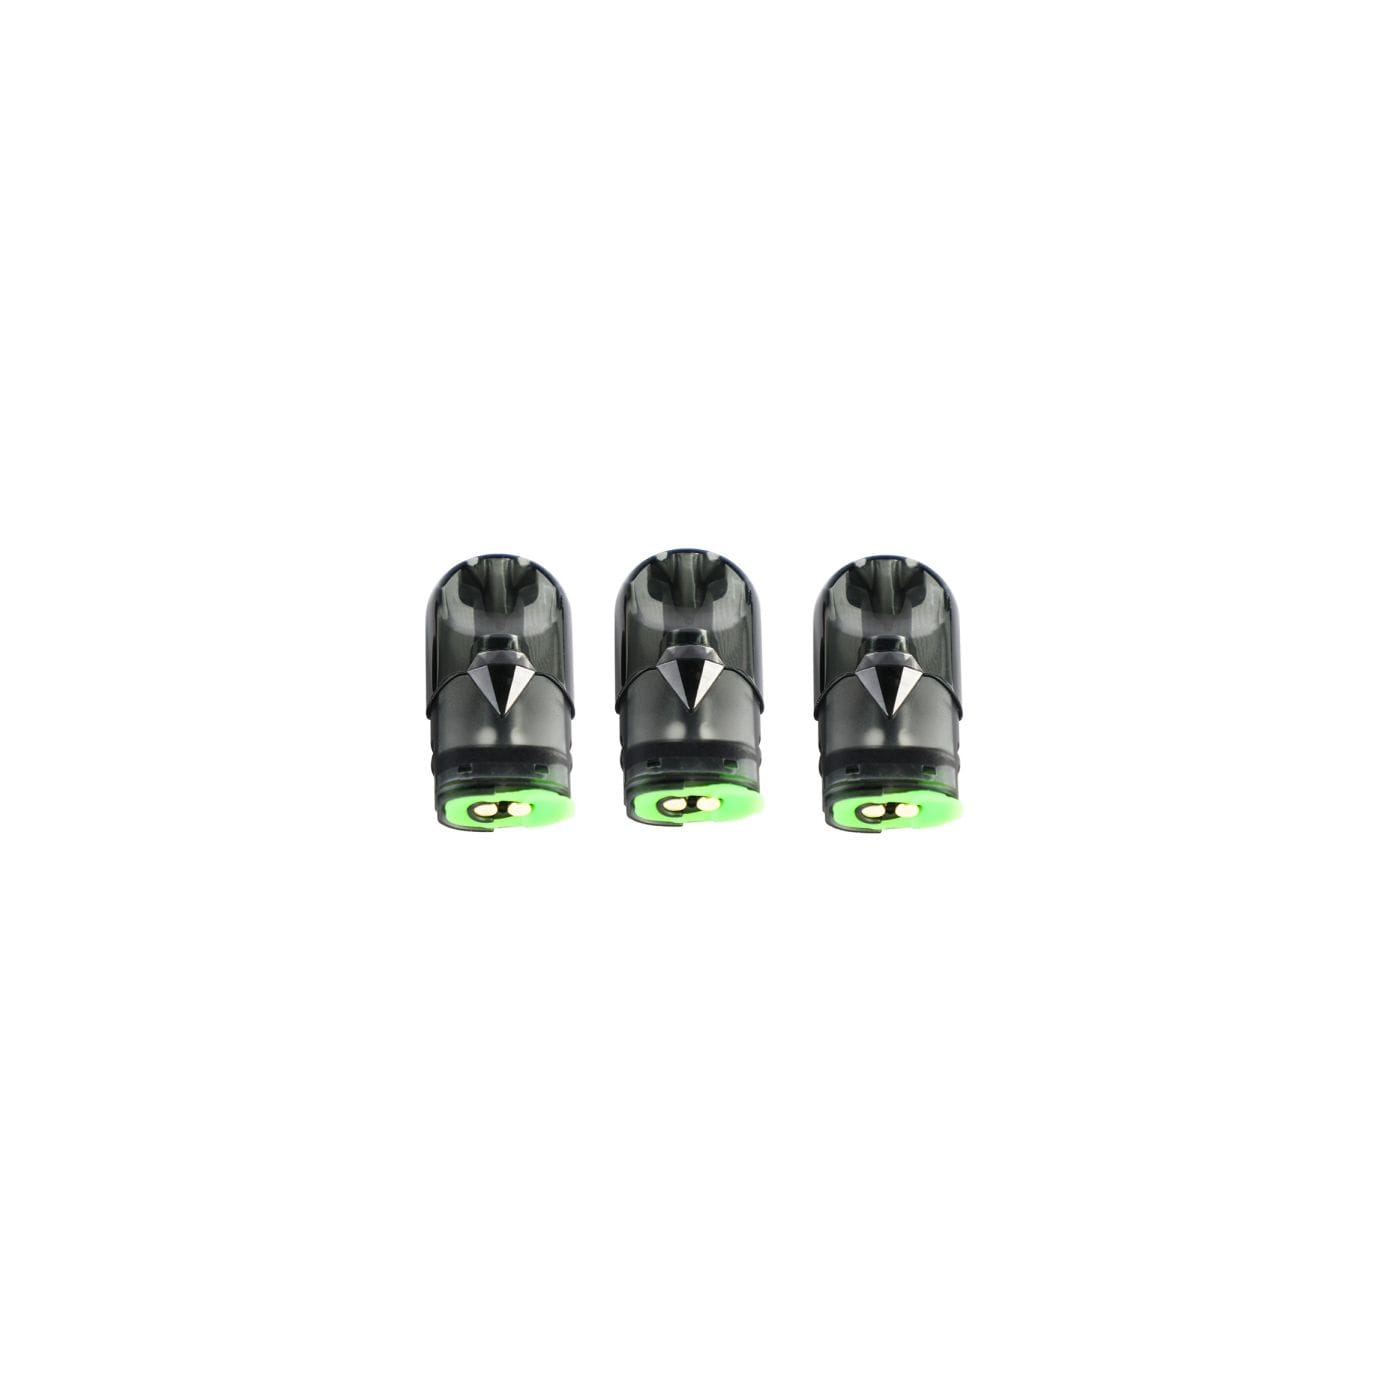 Innokin IO Ceramic Replacement Pods - 3 Pack